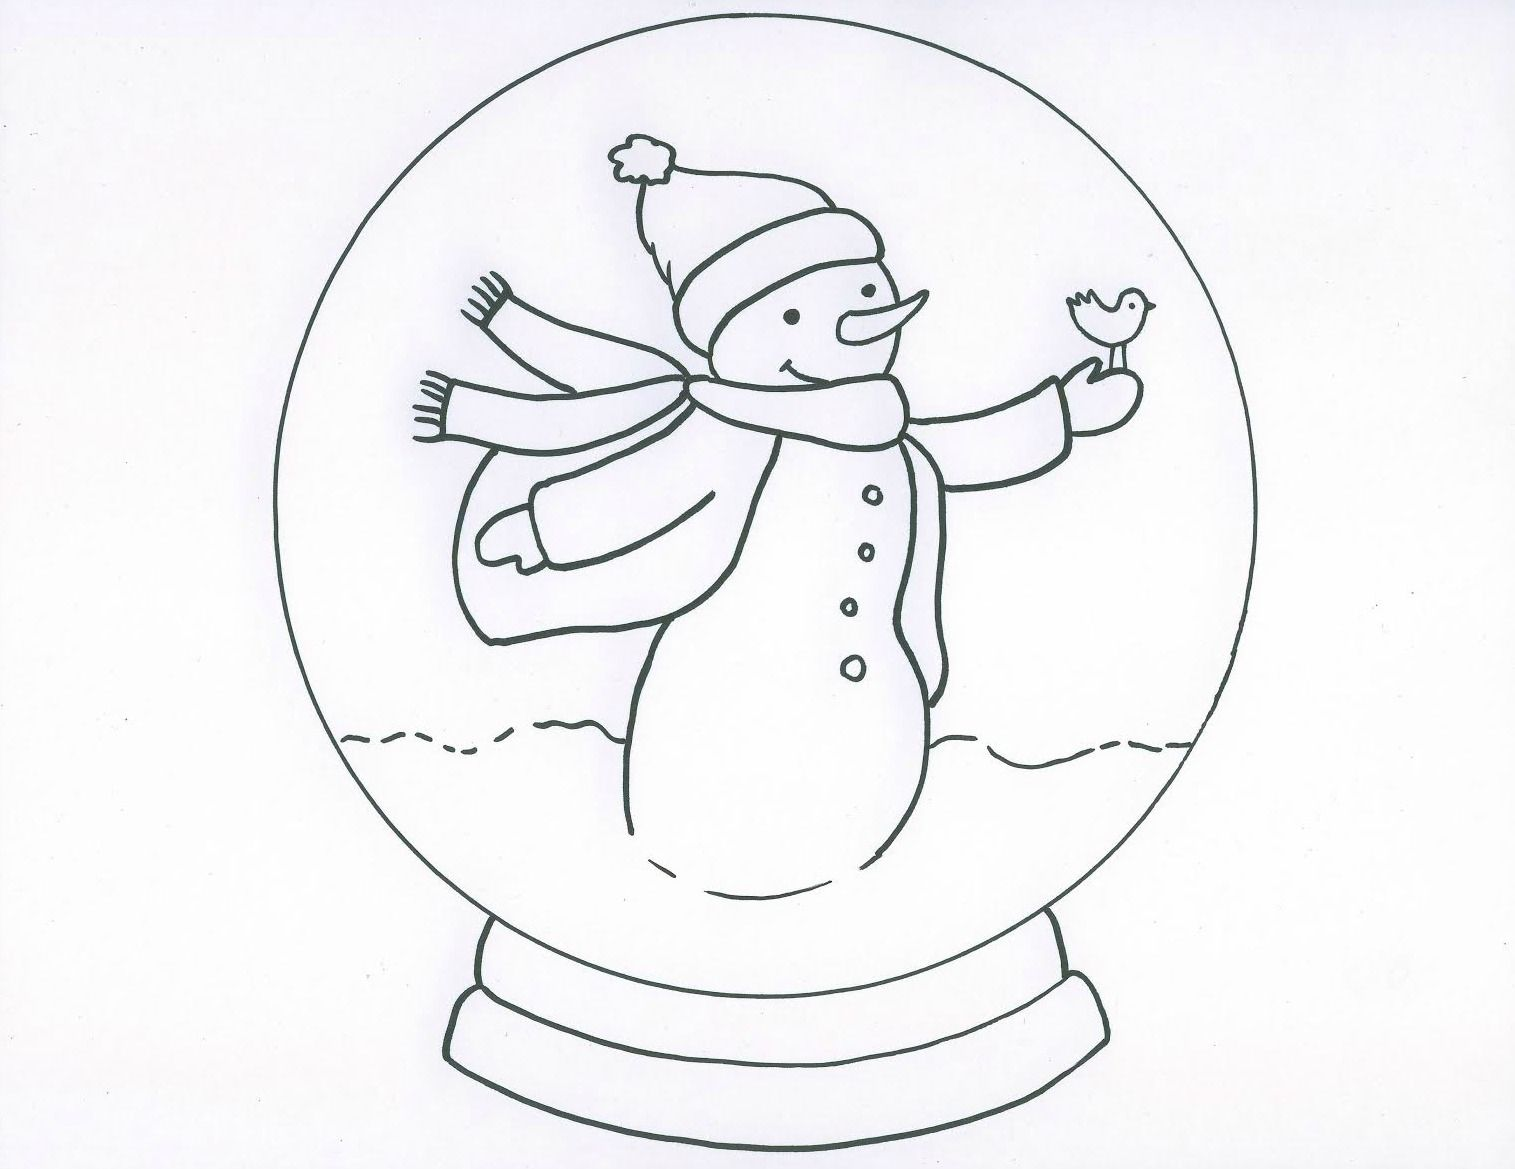 Free Snow Globe Coloring Page, Download Free Clip Art, Free Clip Art on  Clipart Library